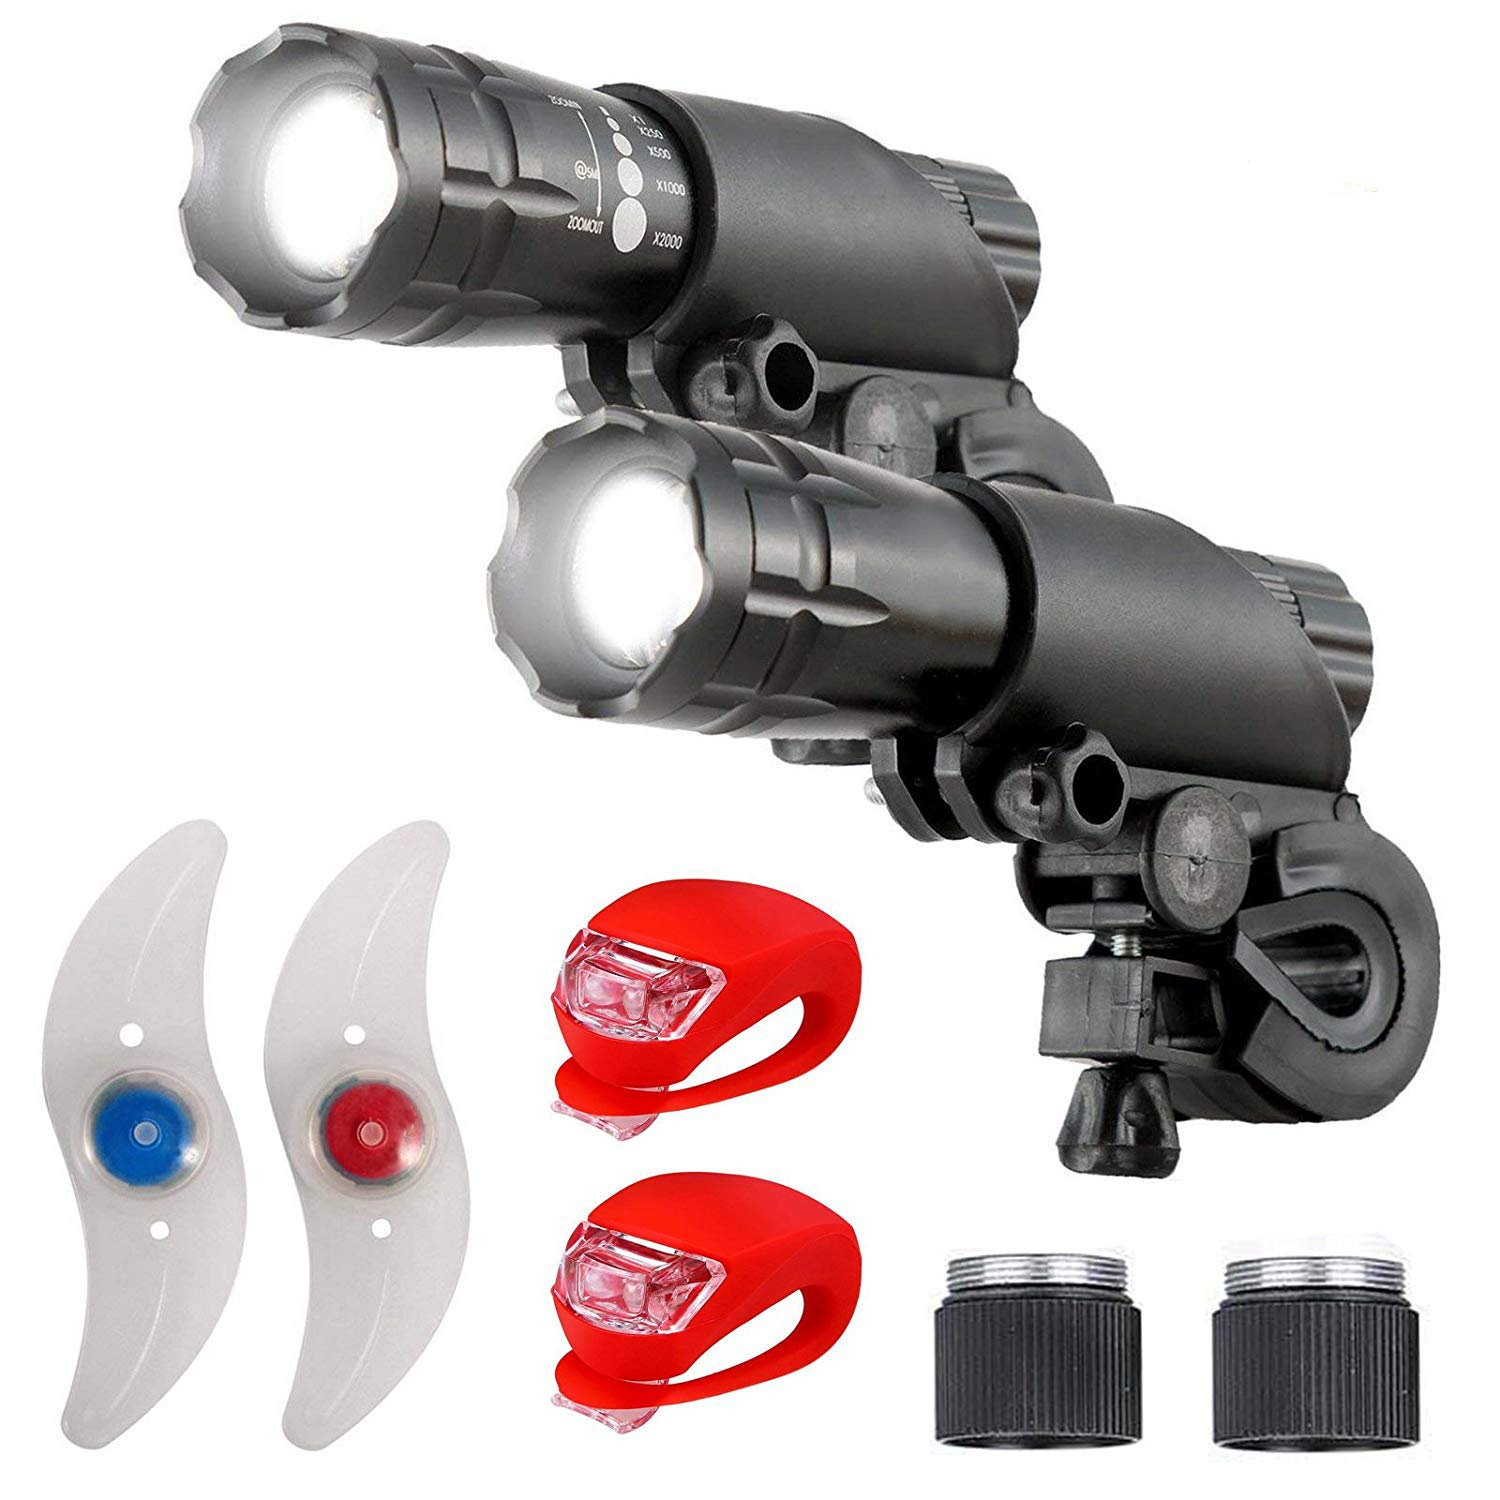 Ulako Bike Lights Double Set - The Ultimate Lighting and Safety Pack of Super Bright Front Bicycle Lights, Tail Lights and Wheel Lights